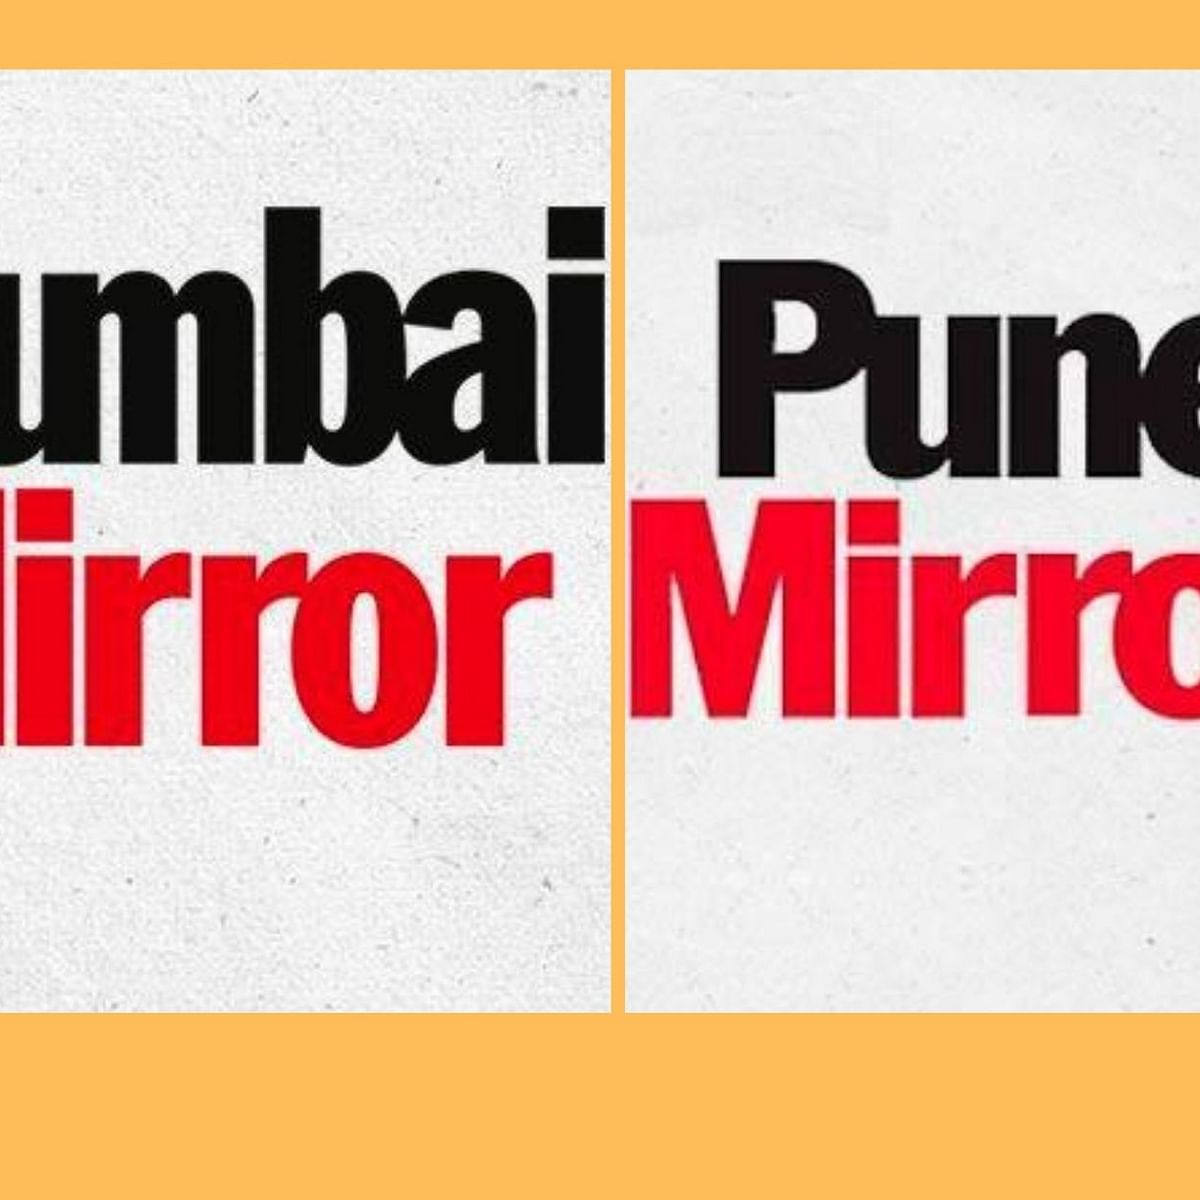 Publication of Mumbai Mirror, Pune Mirror to cease due to coronavirus-induced economic crisis, says TOI